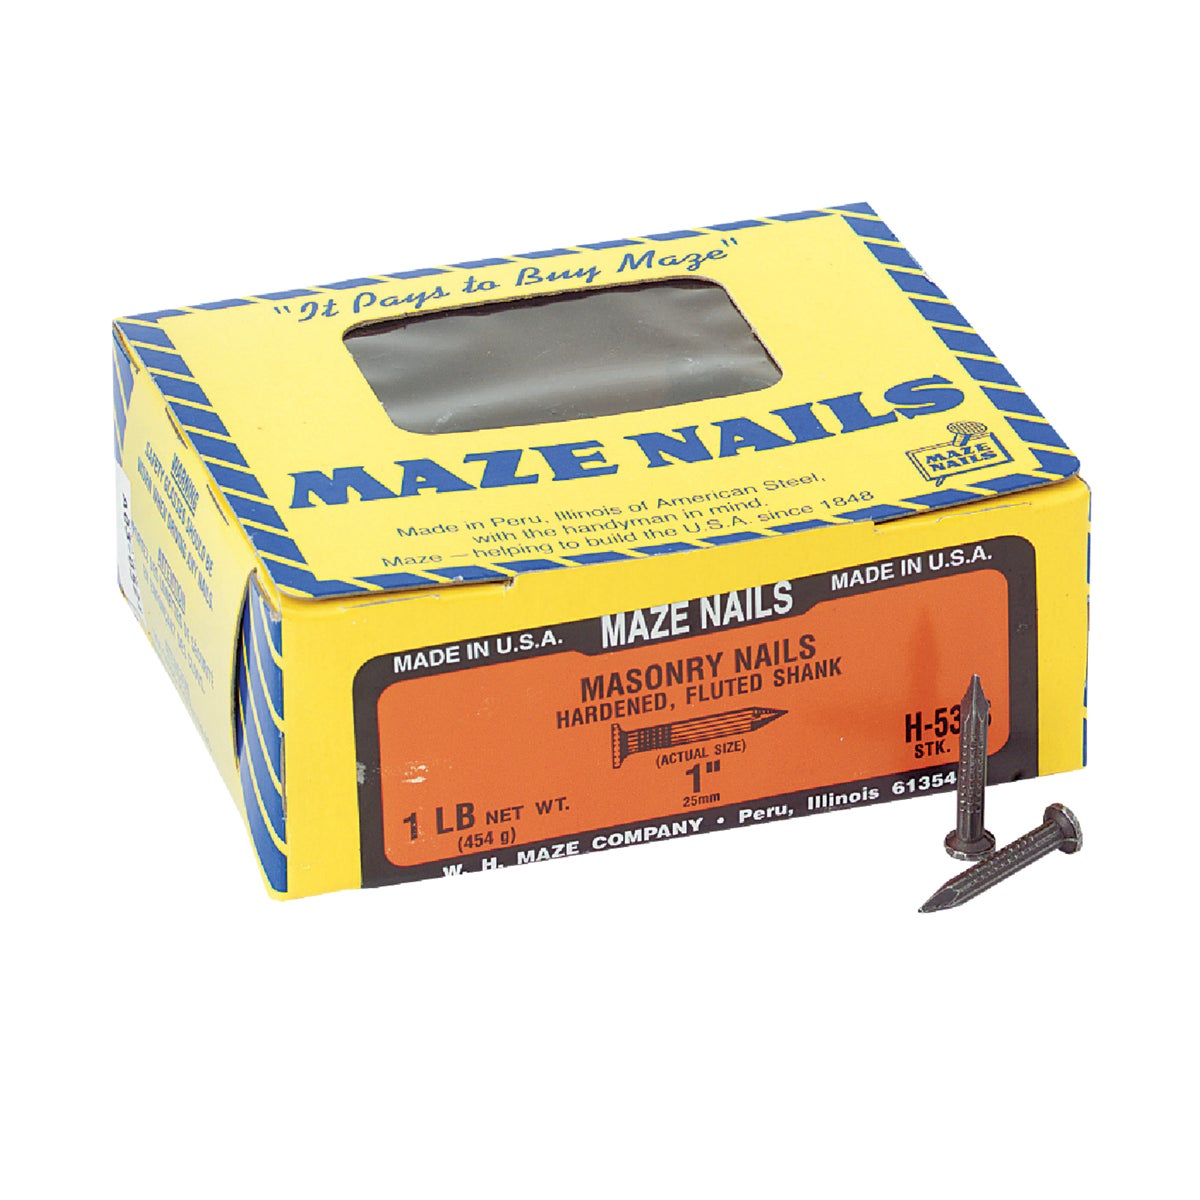 "1LB 1"" MASONRY NAIL - H53S112 by Maze W H Co"